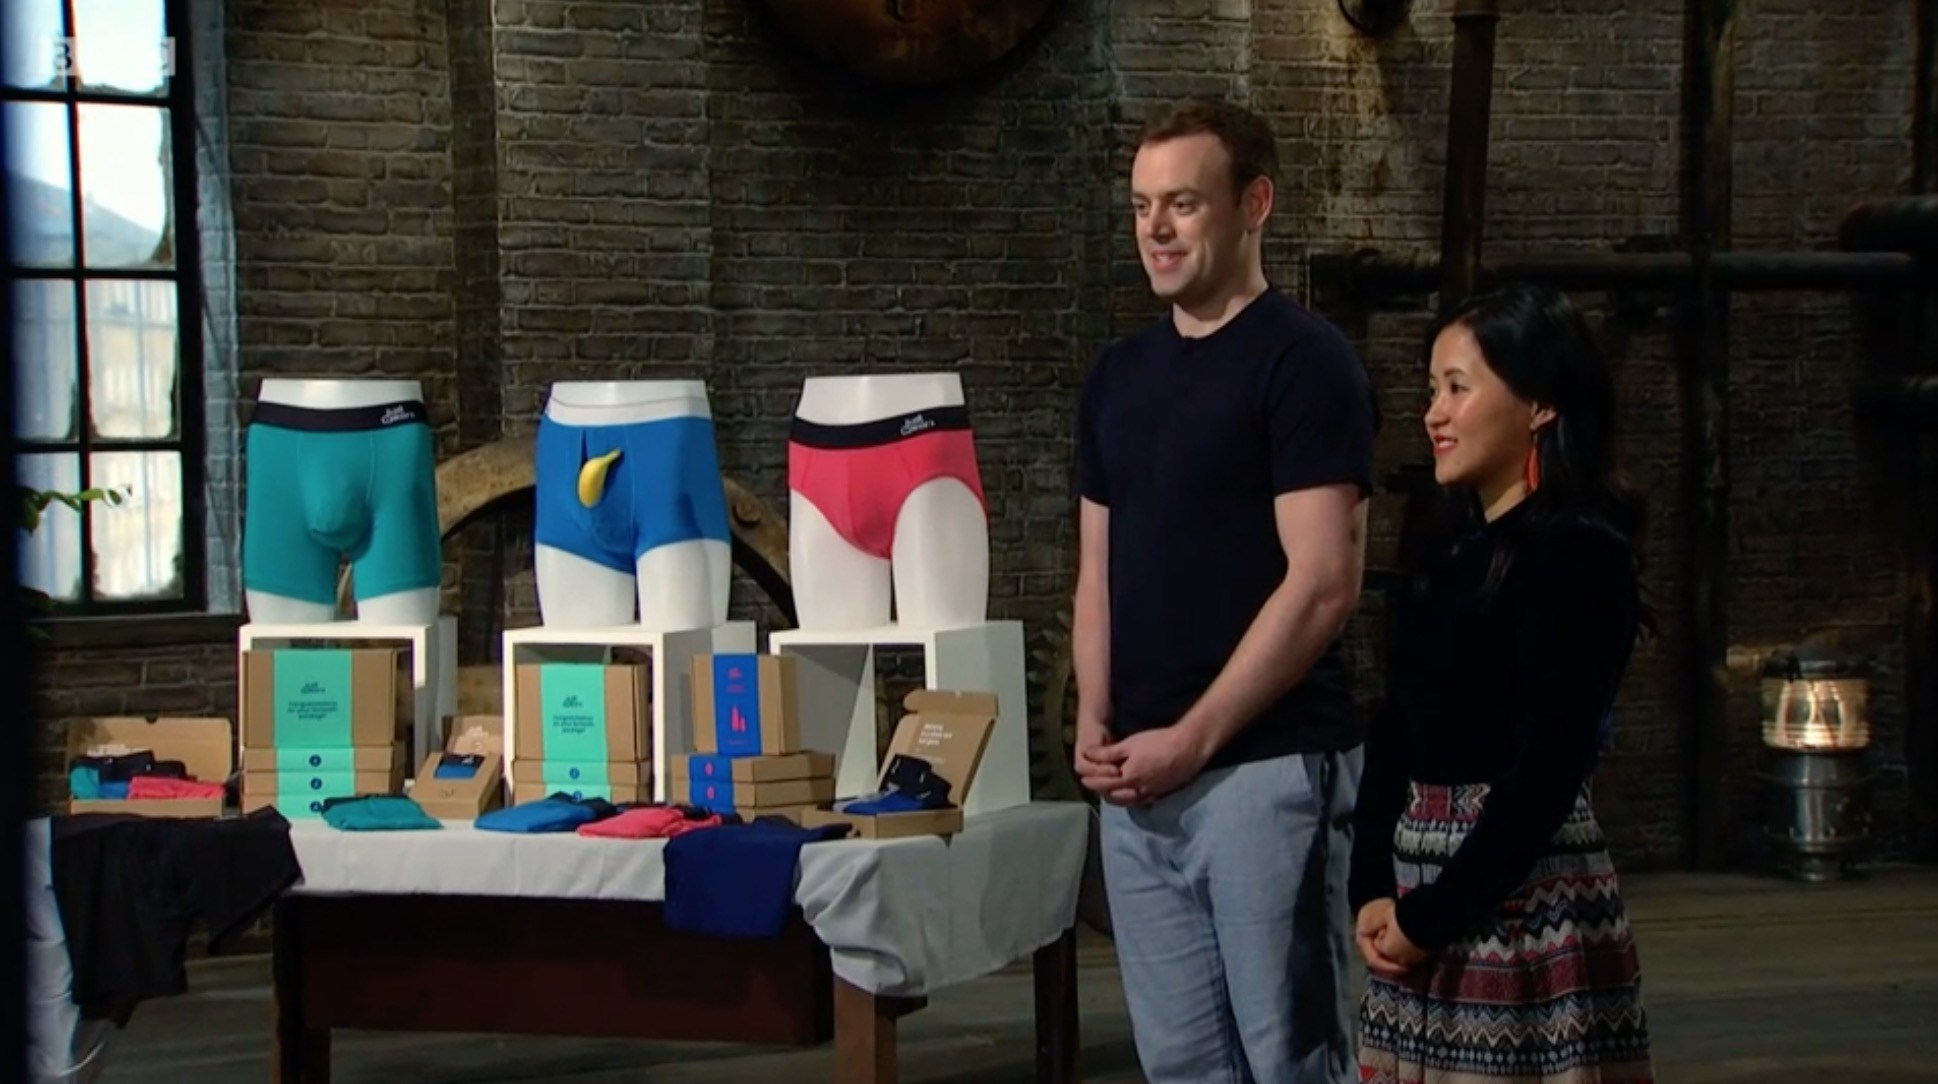 Dragons' Den stars get the giggles Peter Jones compares bulge sizes on pants: 'It's a palace for your phallus!'